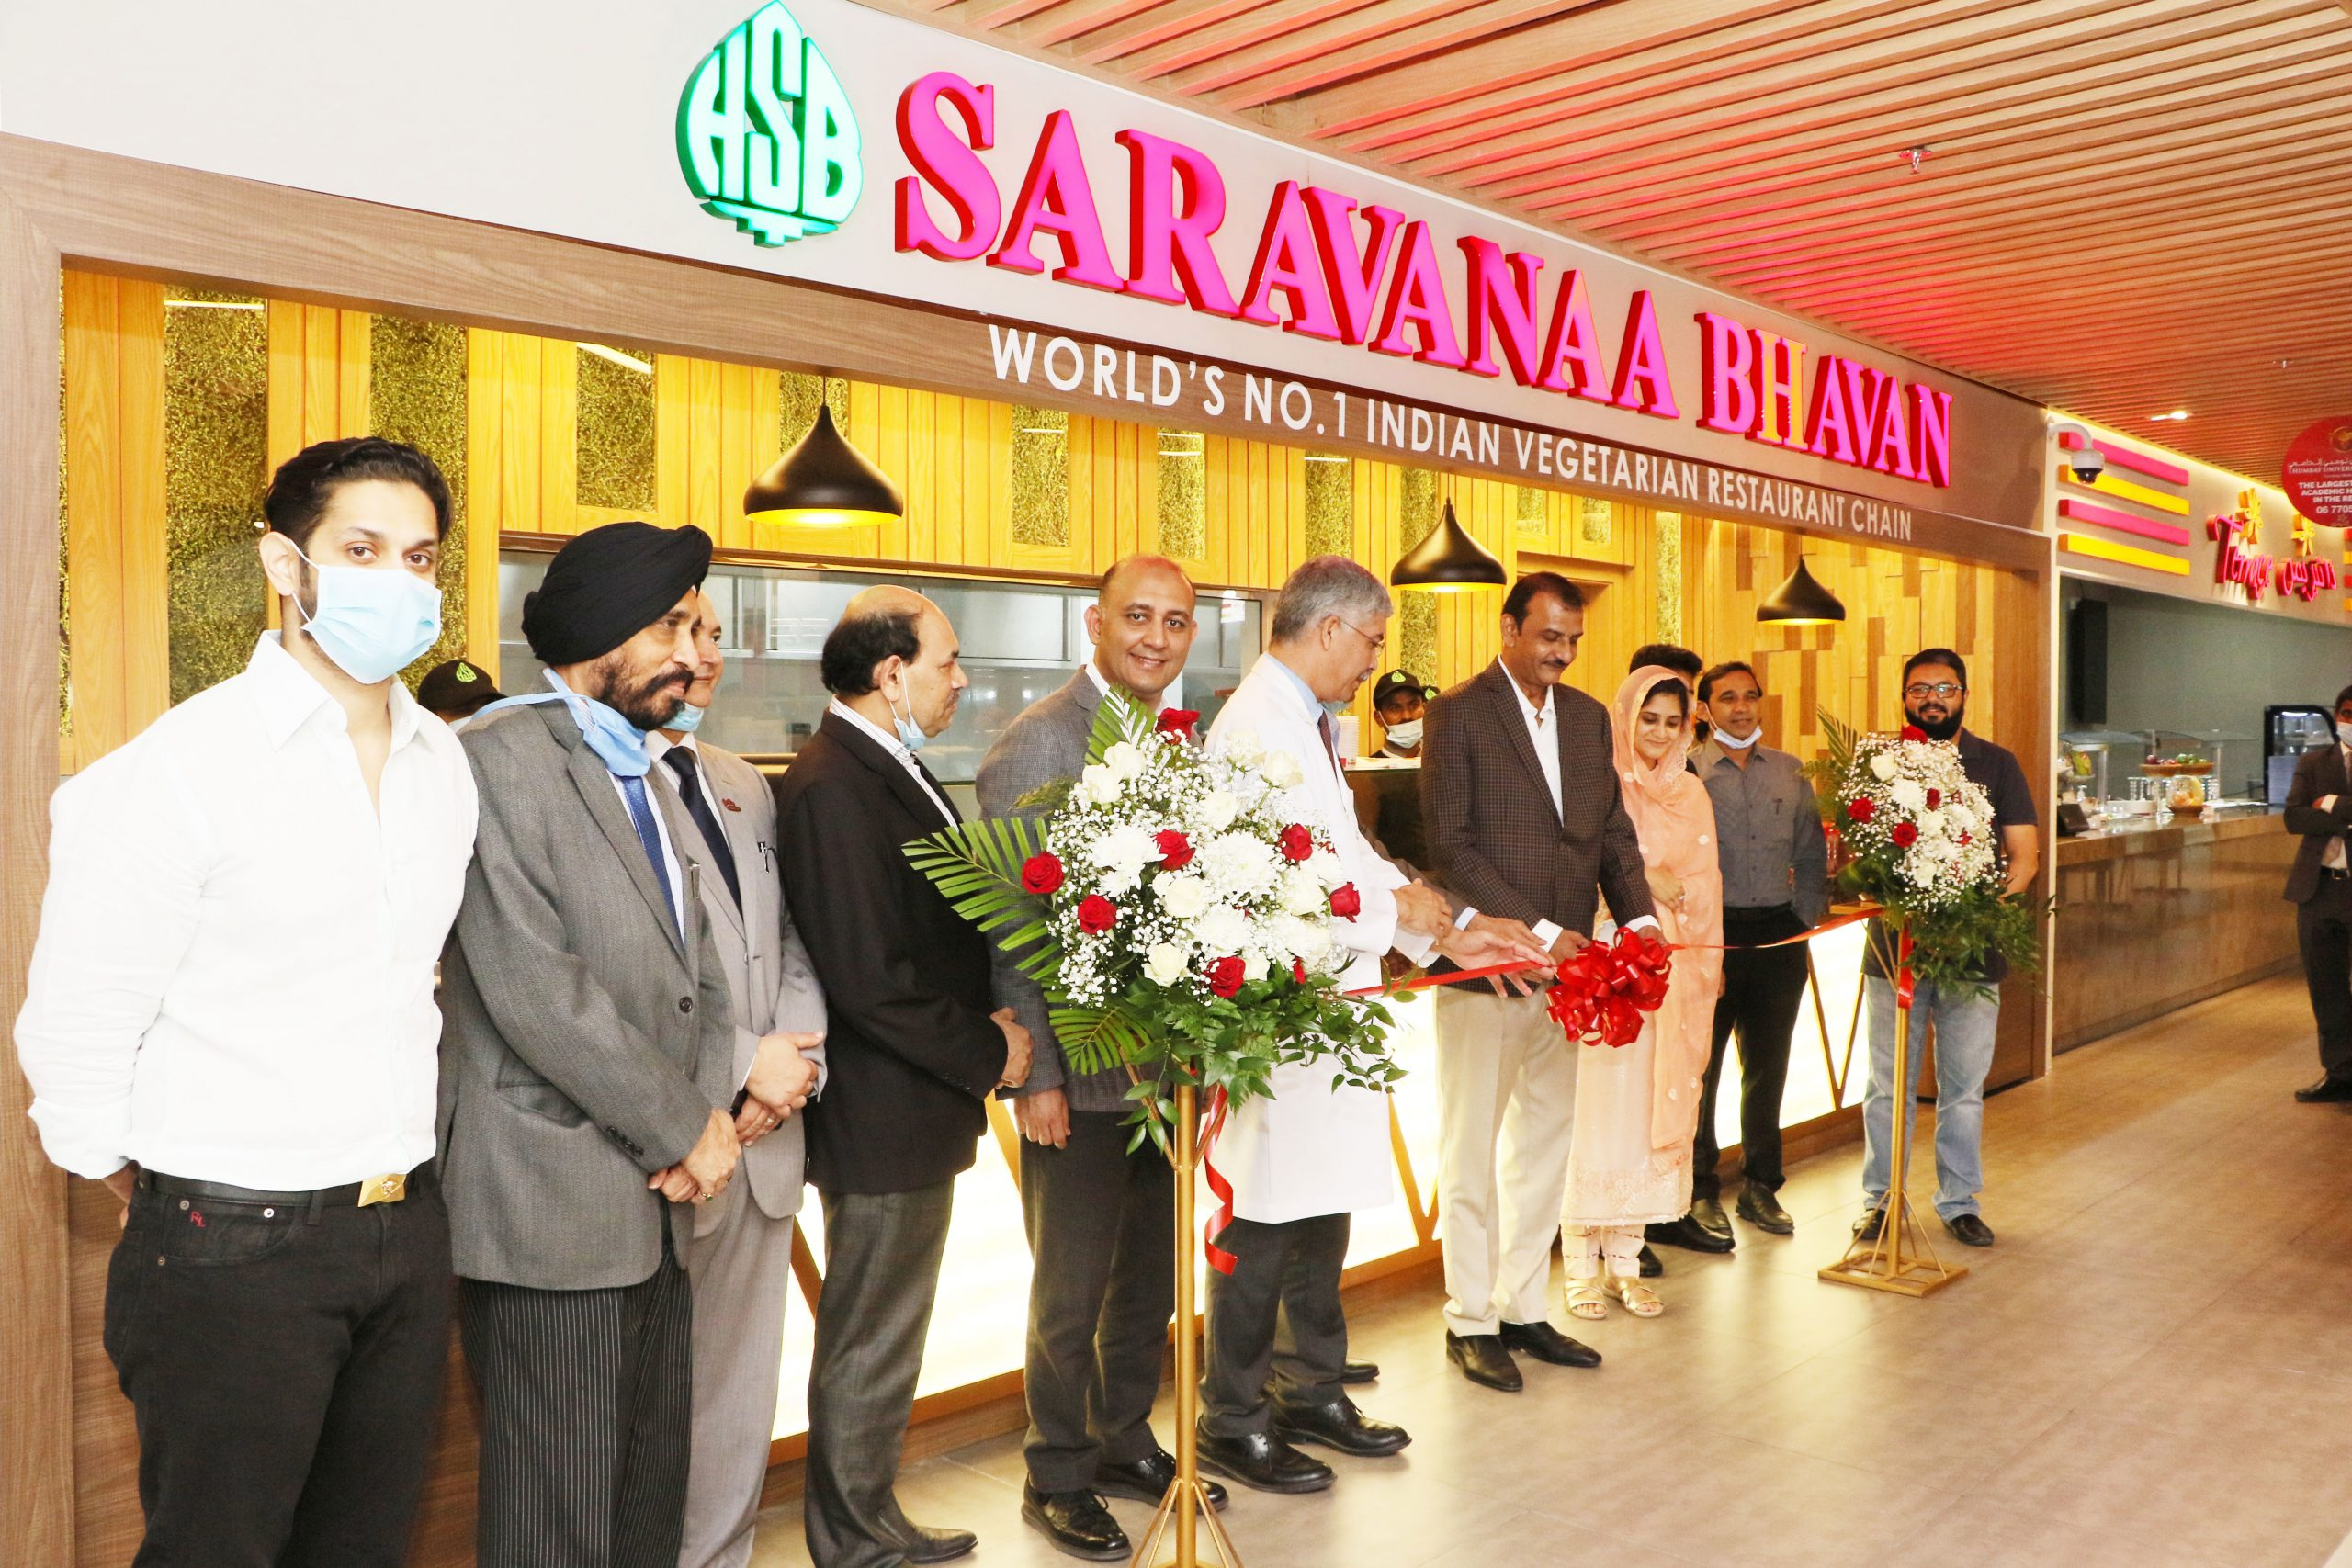 Renowned Indian Vegetarian Restaurant Chain Saravanaa Bhavan Opens Outlet in Thumbay Food Court at Thumbay Medicity Ajman